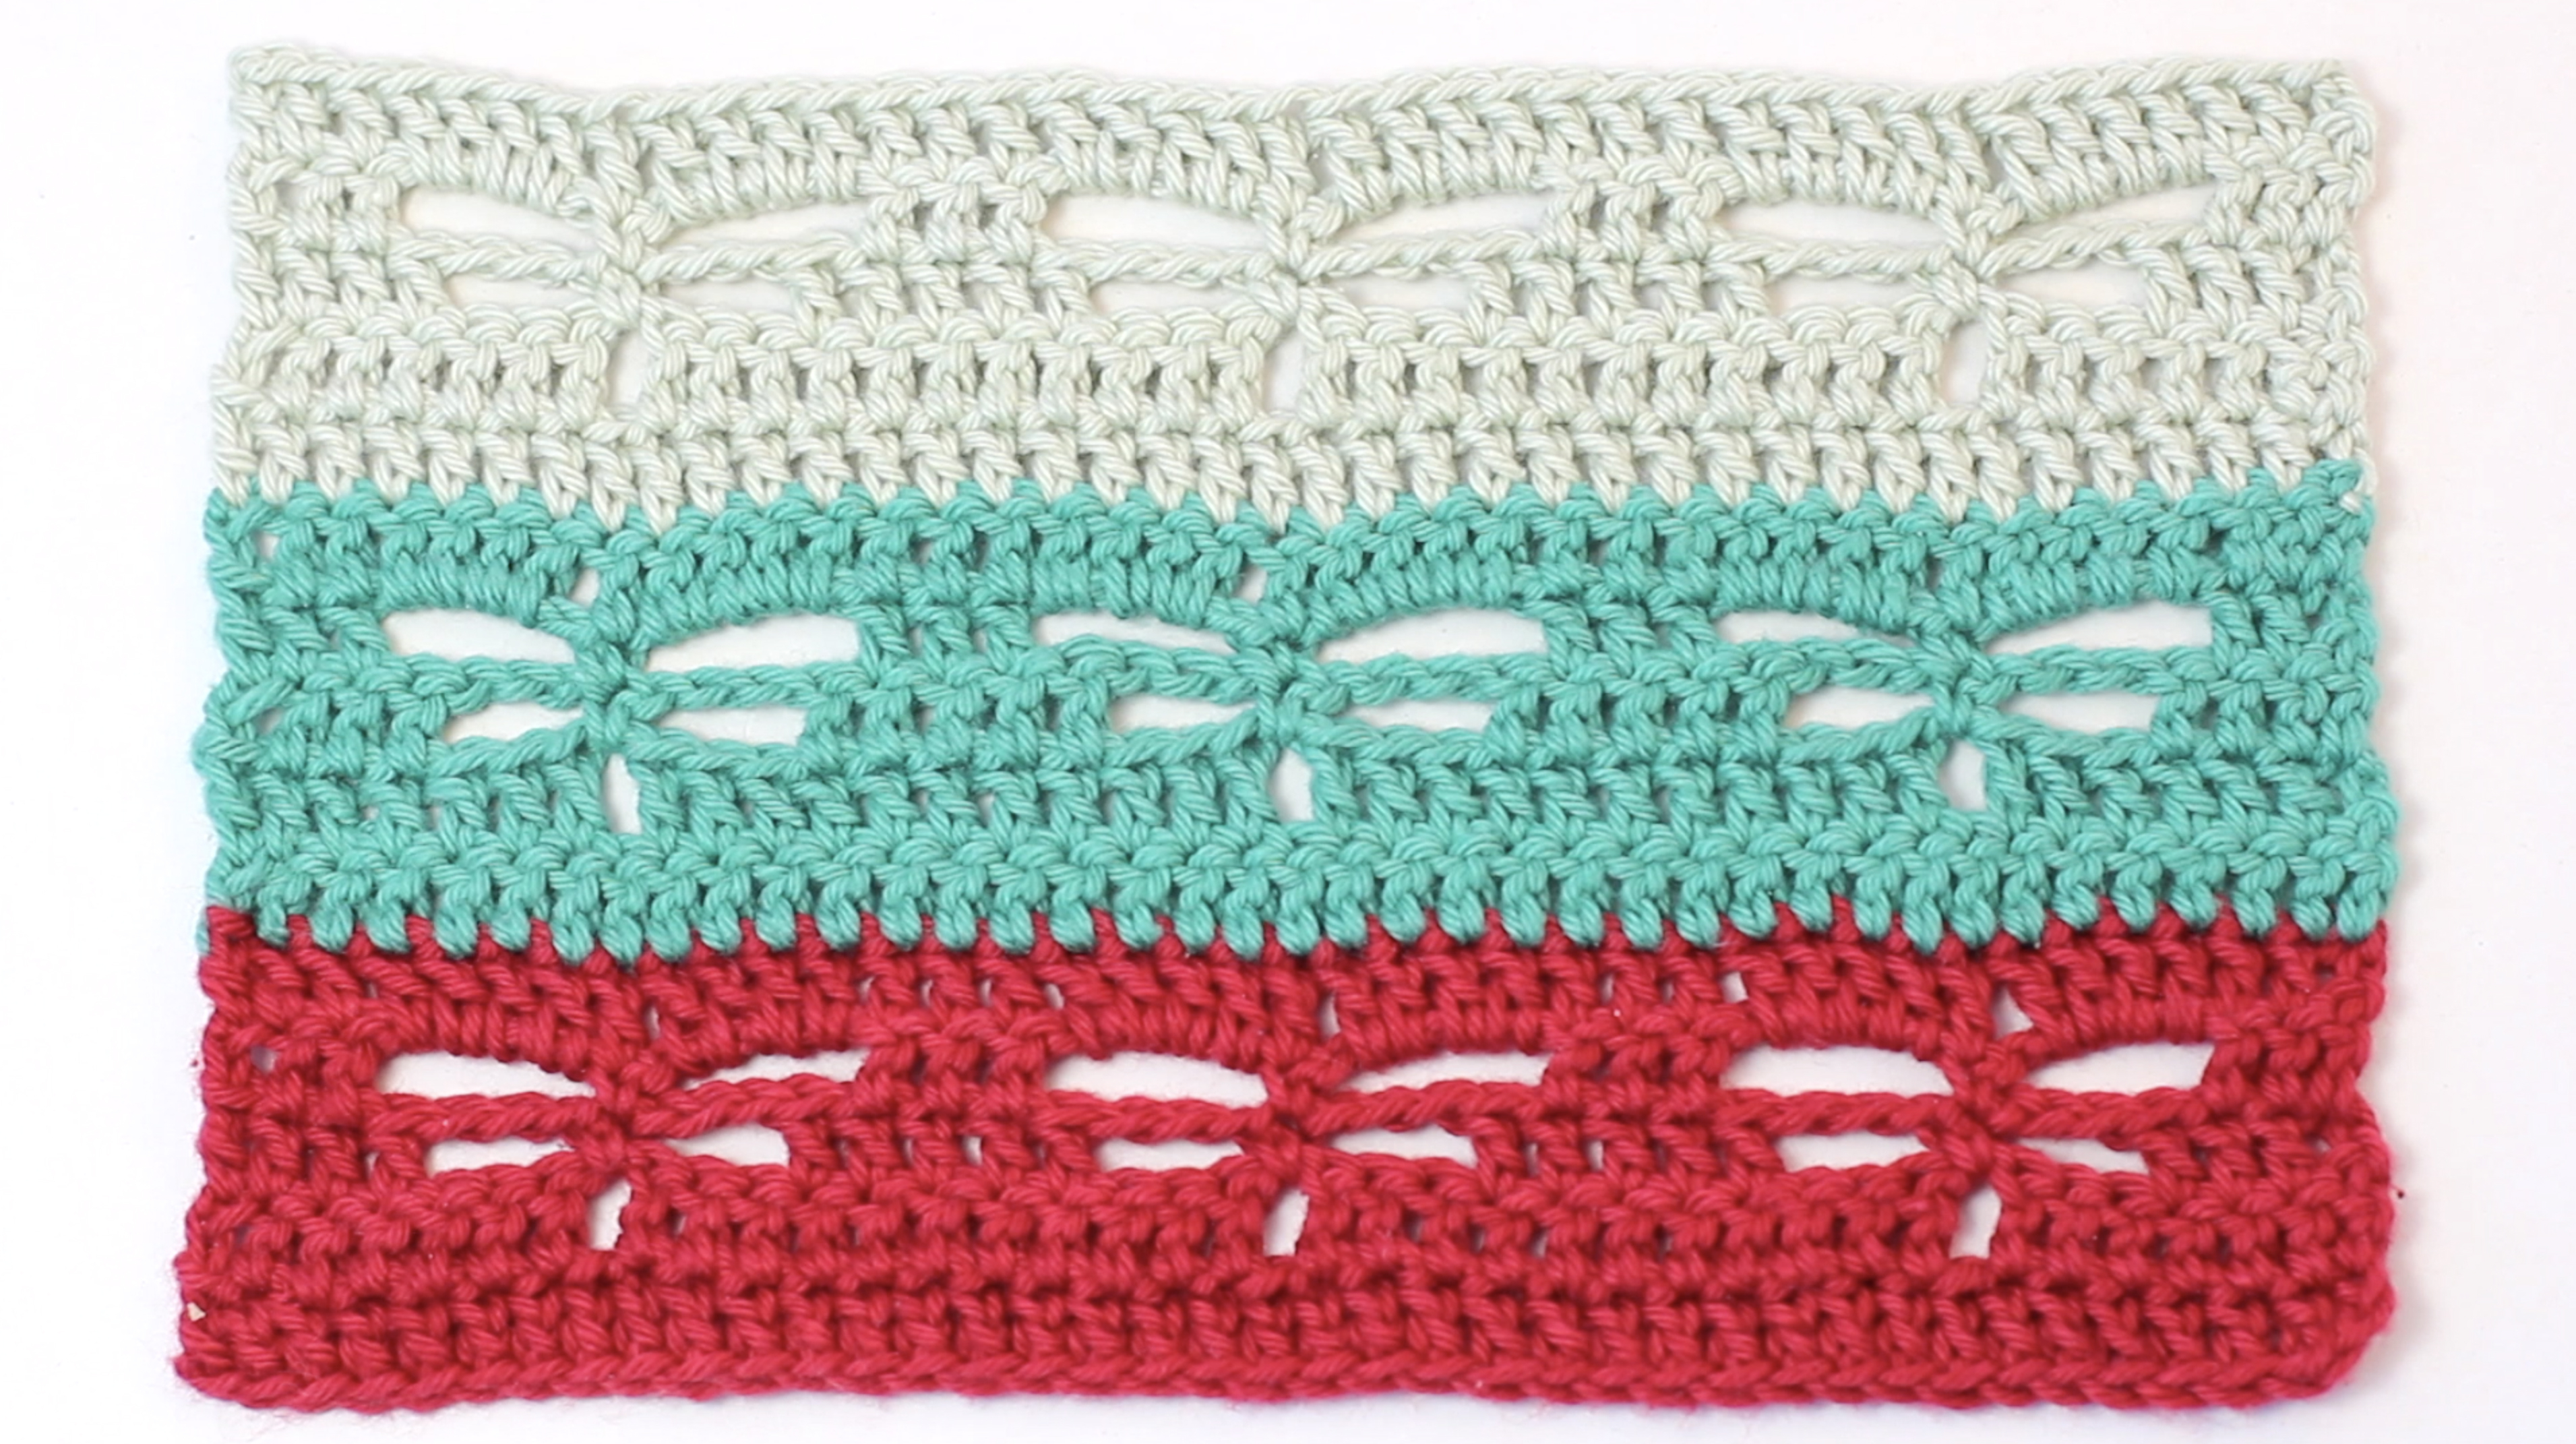 Crochet Stitch Pattern  A Guide To Crochet Stitches Lovecrafts Loveknittings New Home